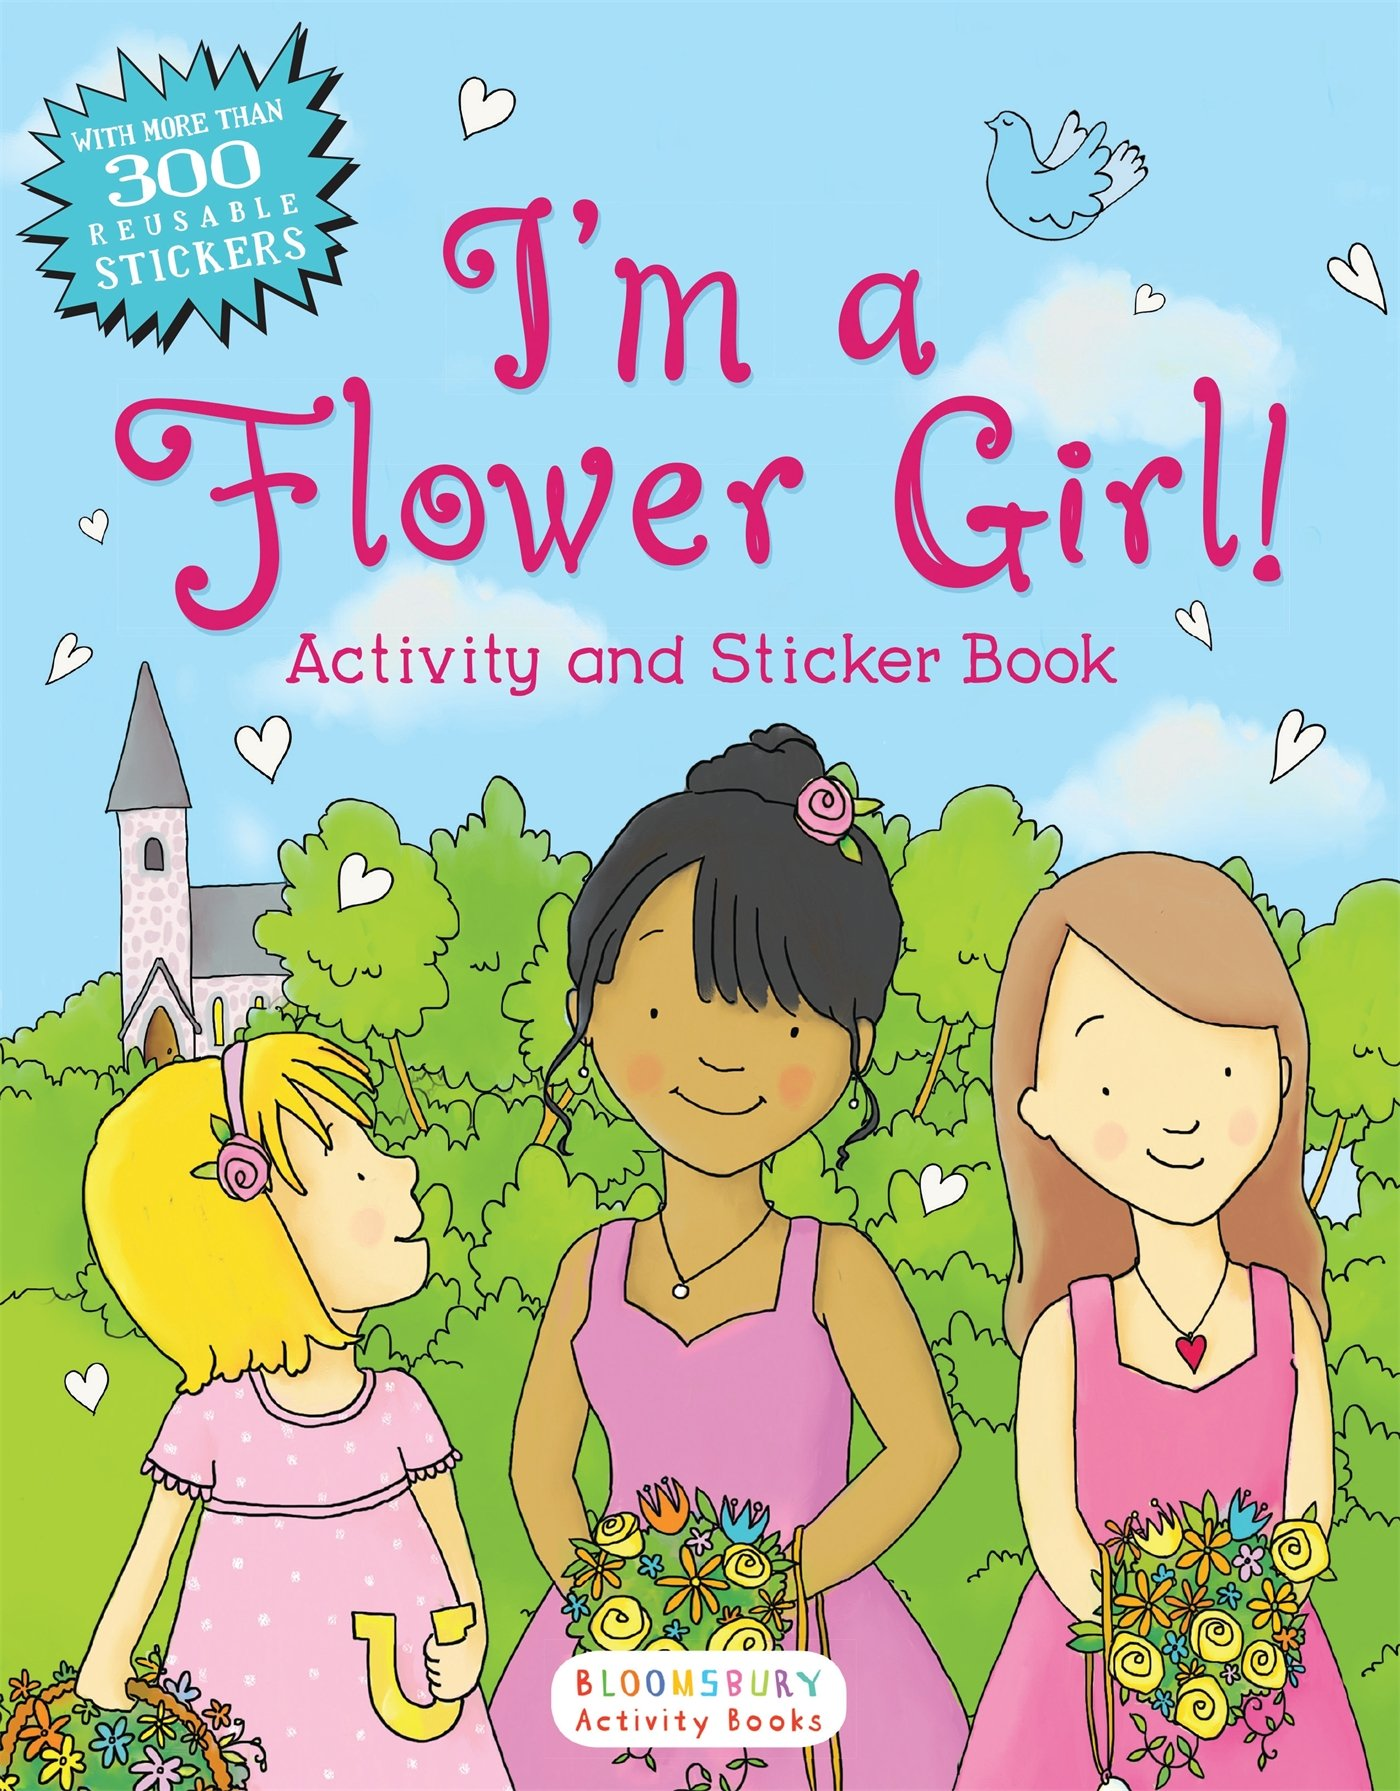 tips for flower girl  activity book- she got guts.jpg